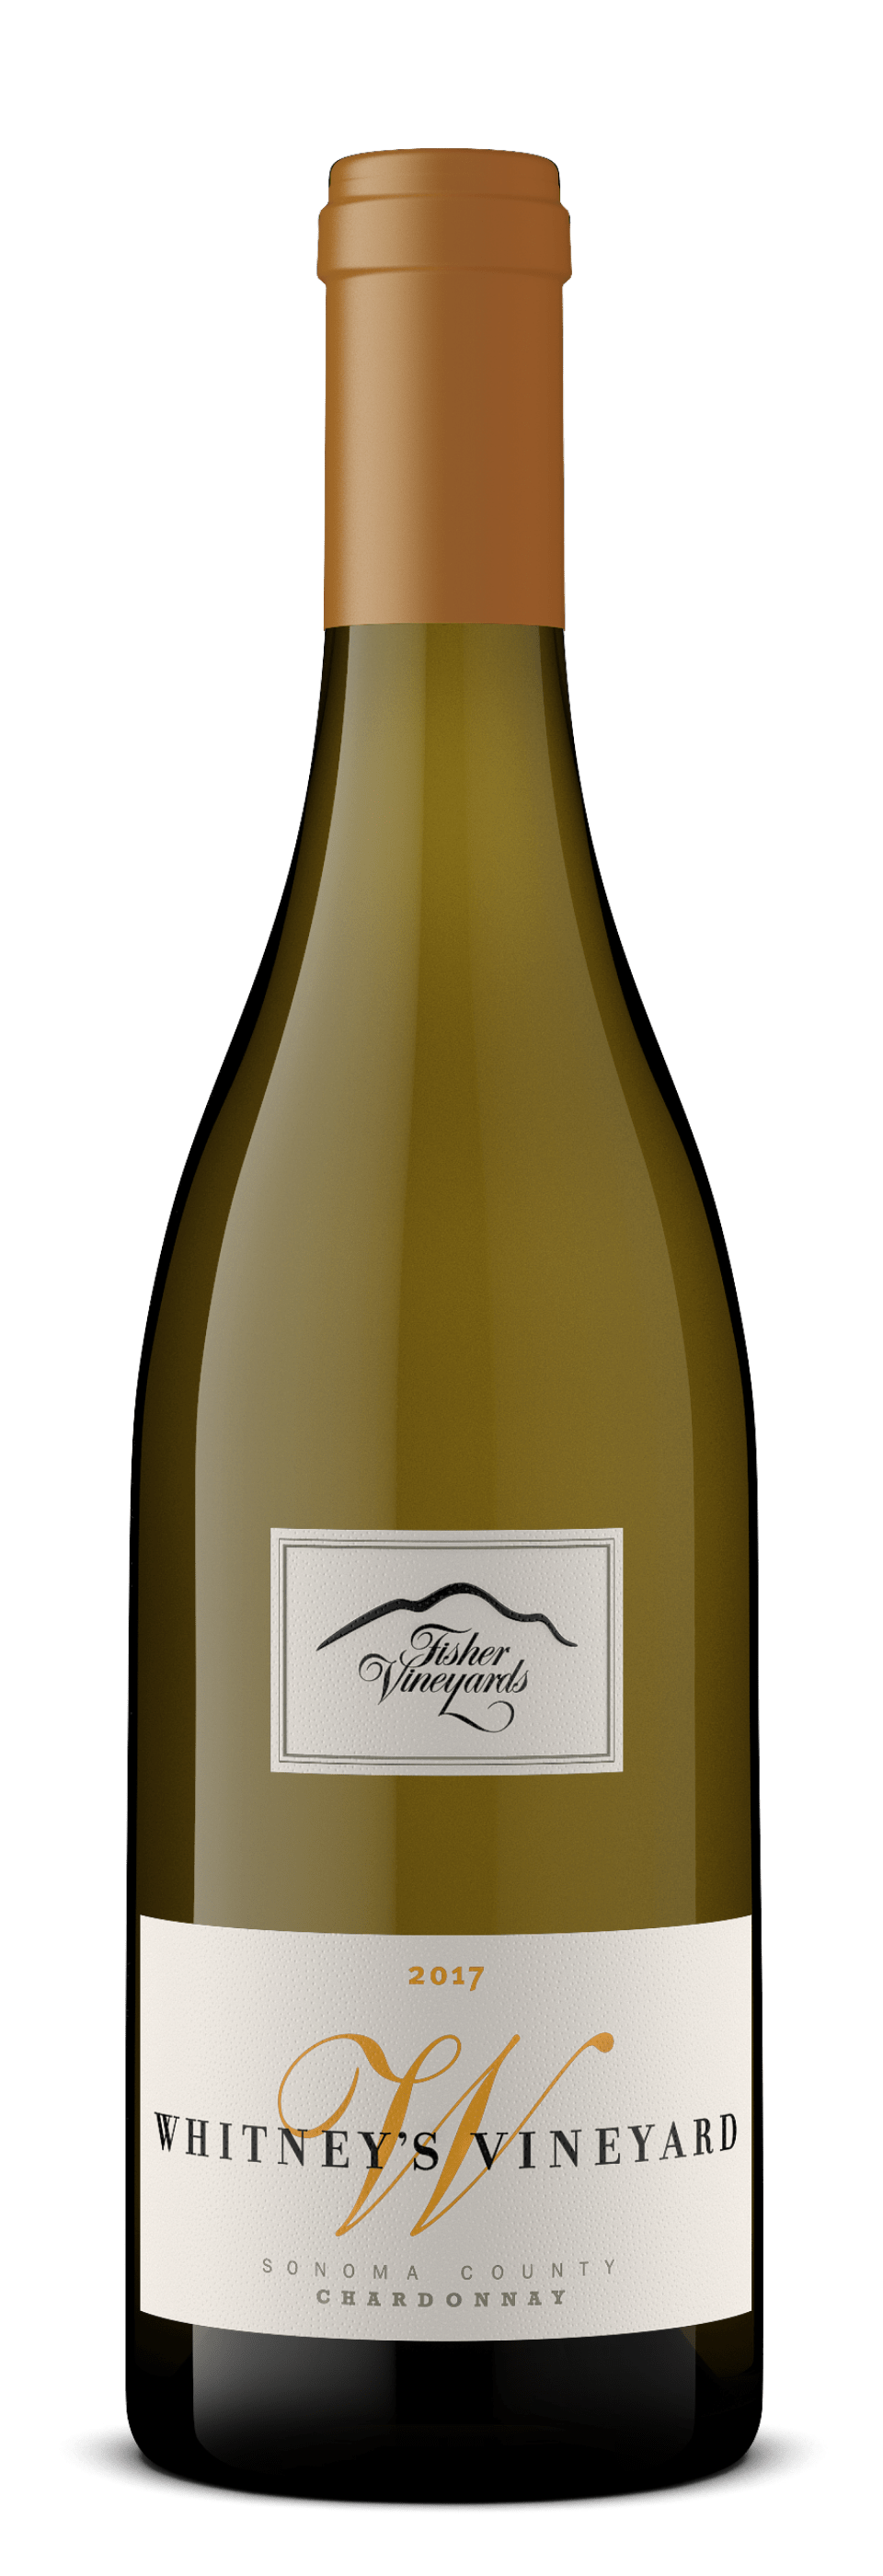 2017 Whitney's Vineyard Sonoma County Chardonnay bottle